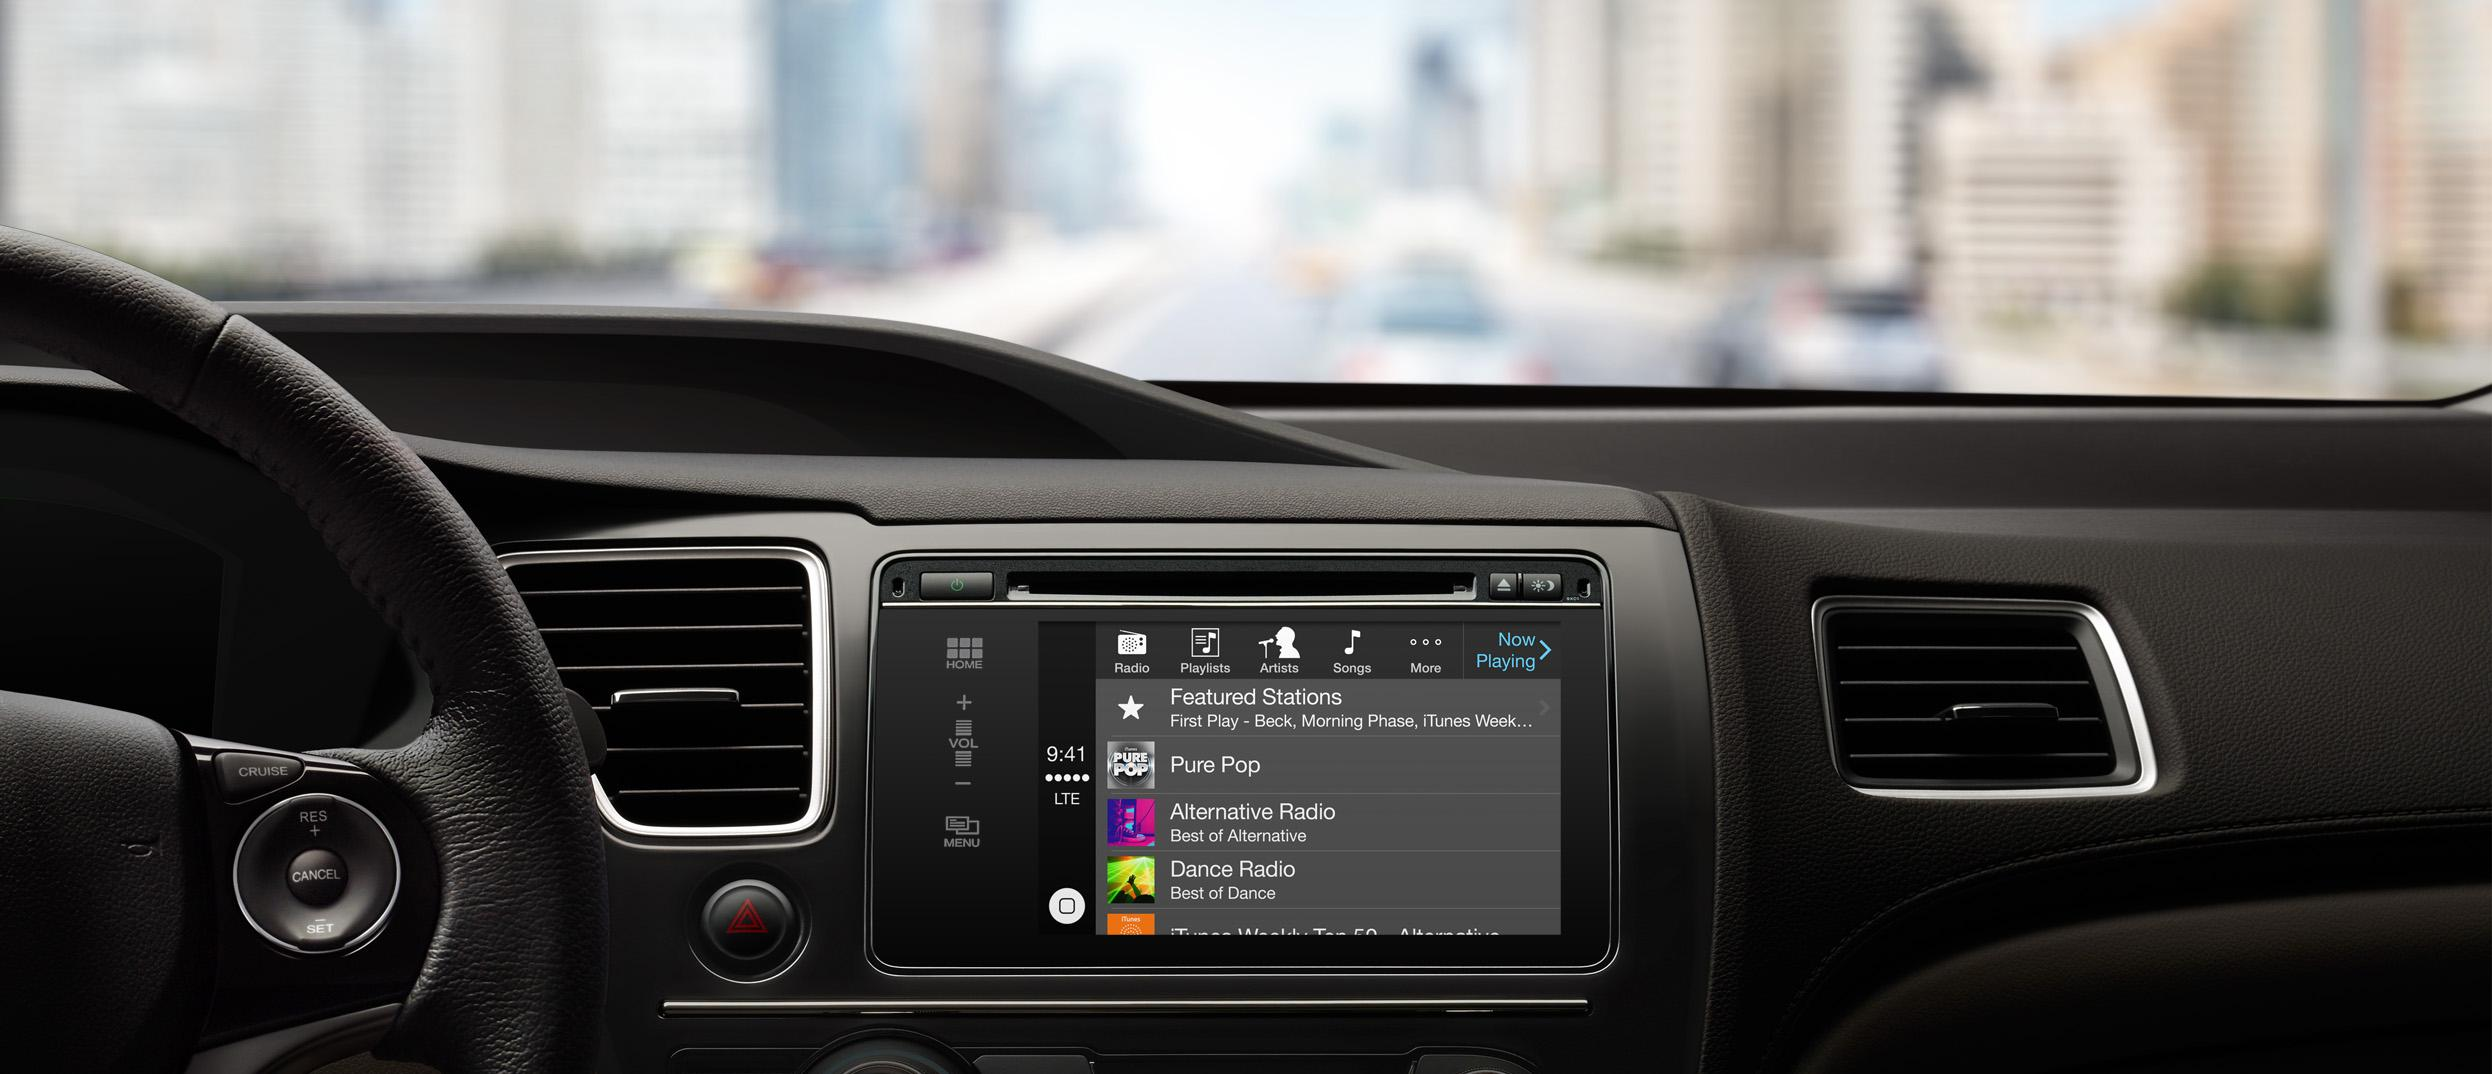 Carplay Music Apple